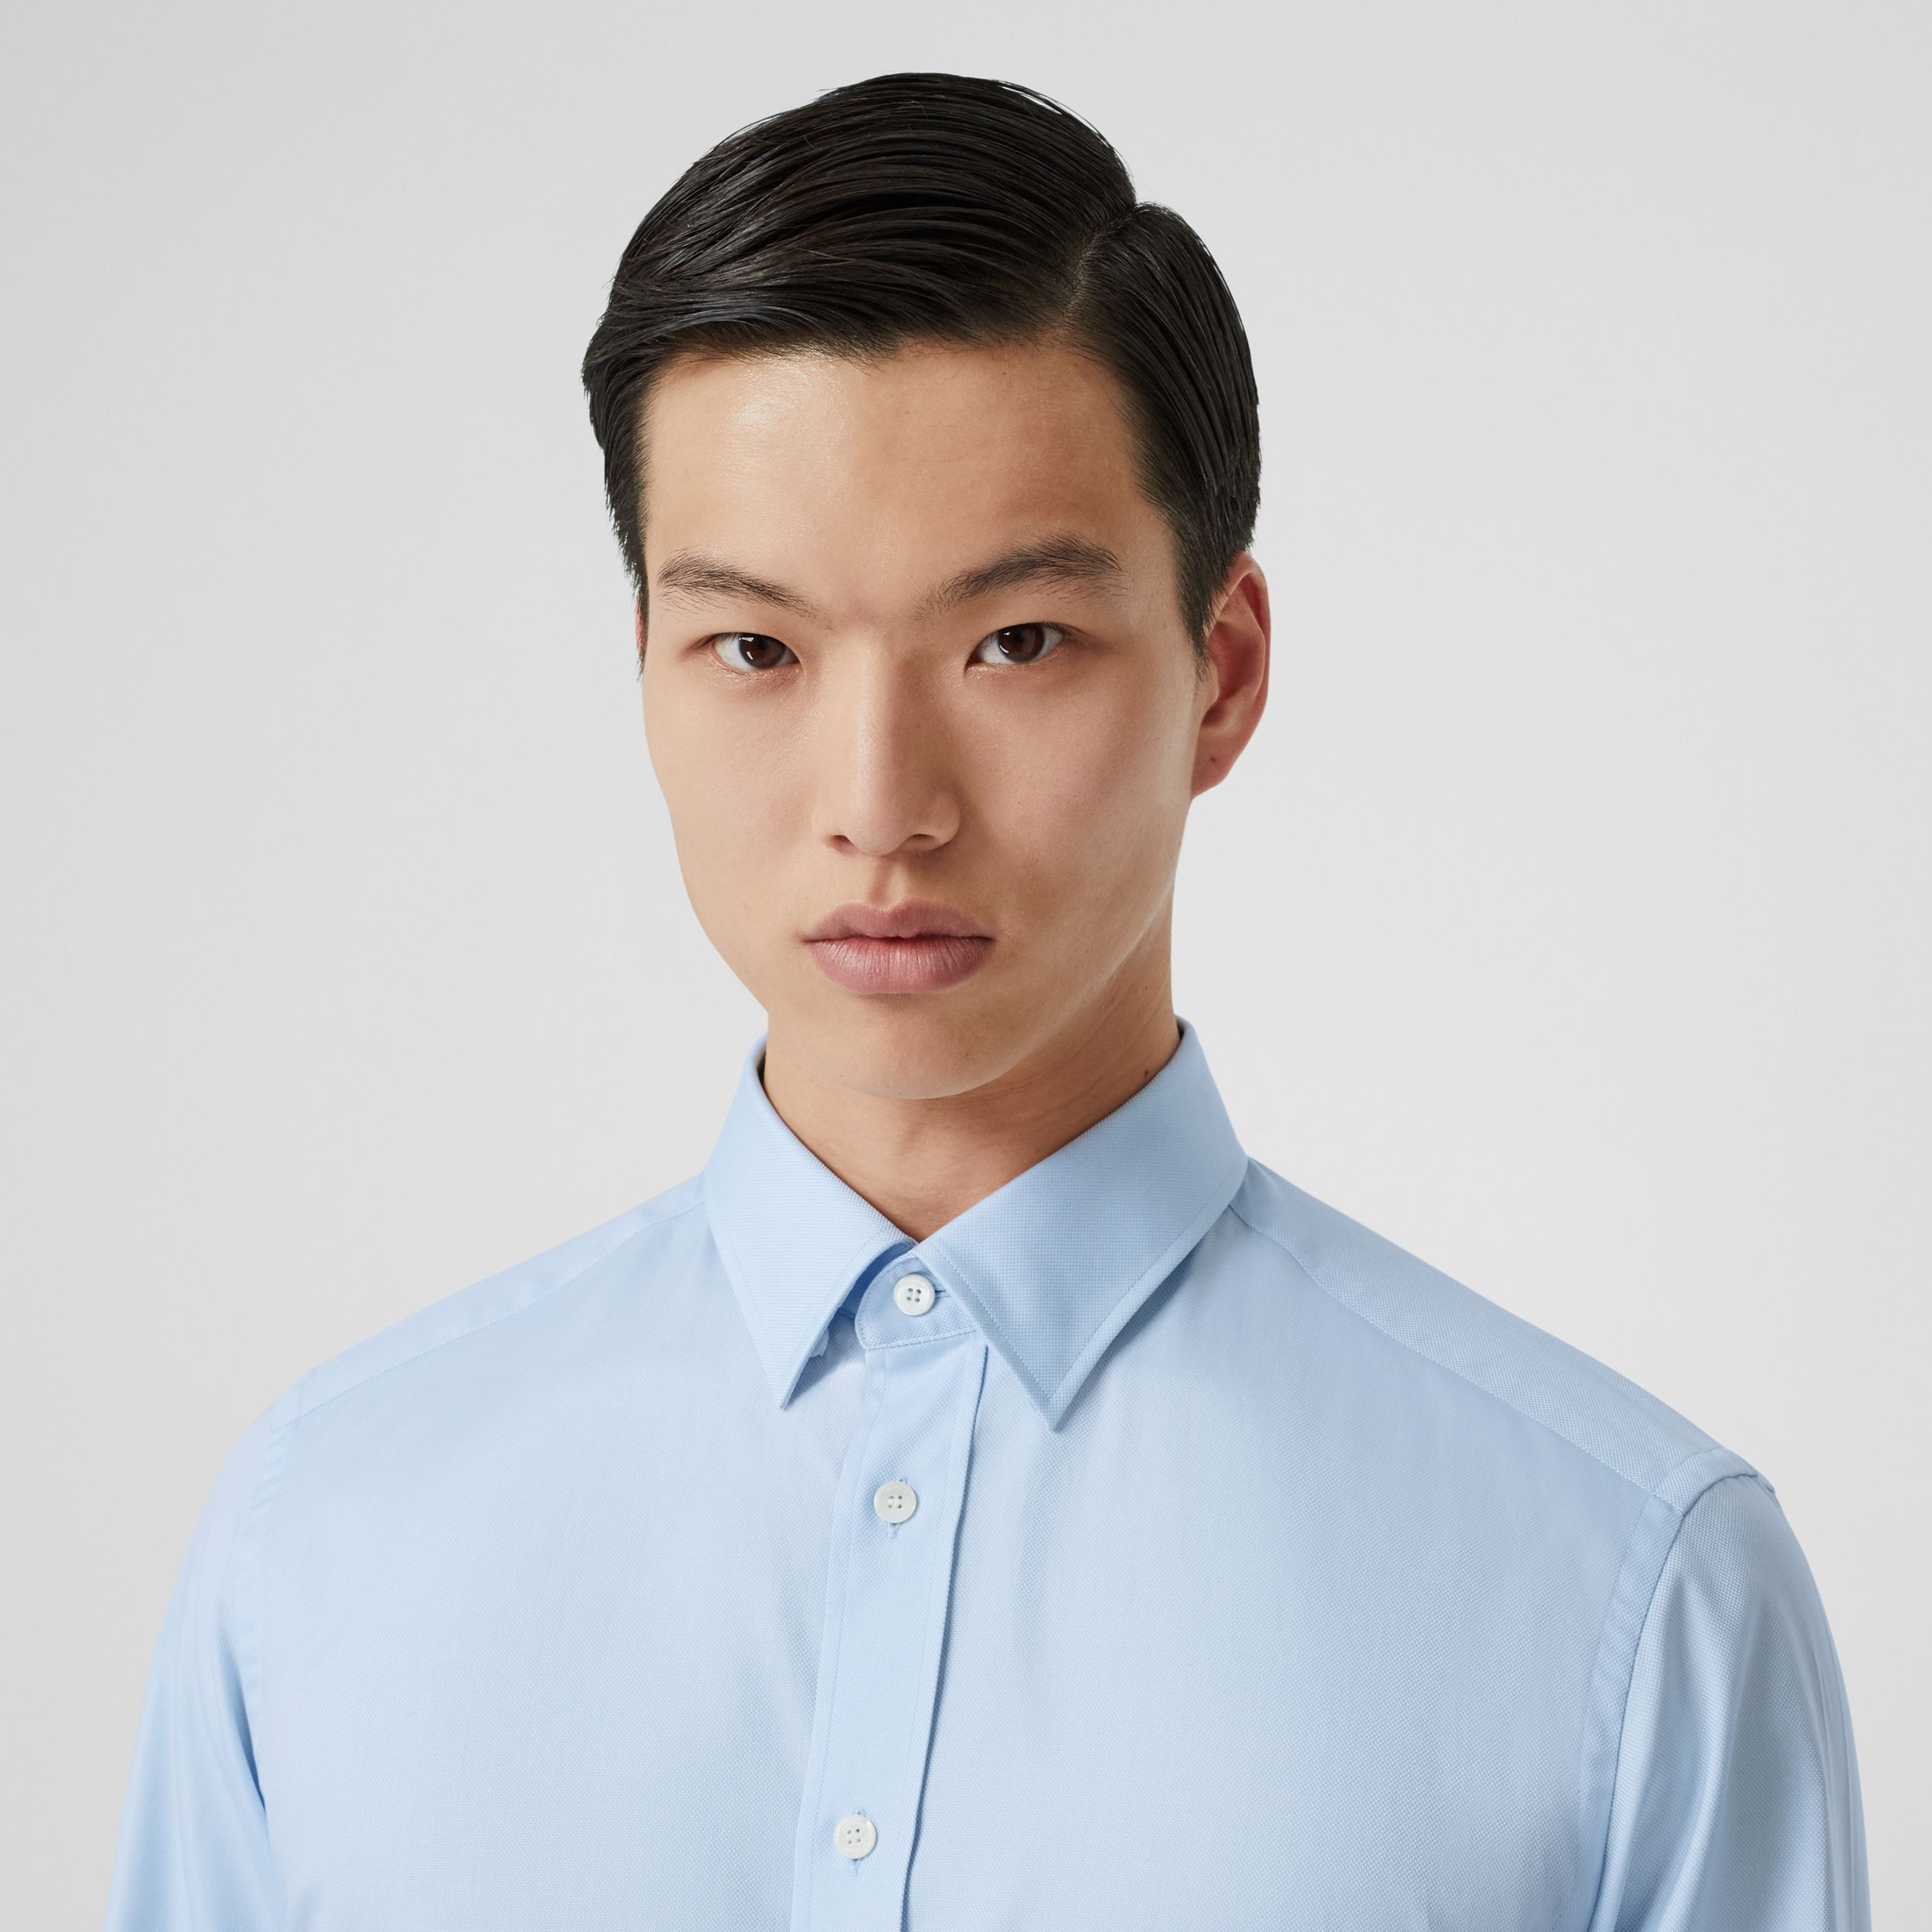 Classic Fit Monogram Motif Cotton Oxford Shirt in Pale Blue - Men | Burberry - 2